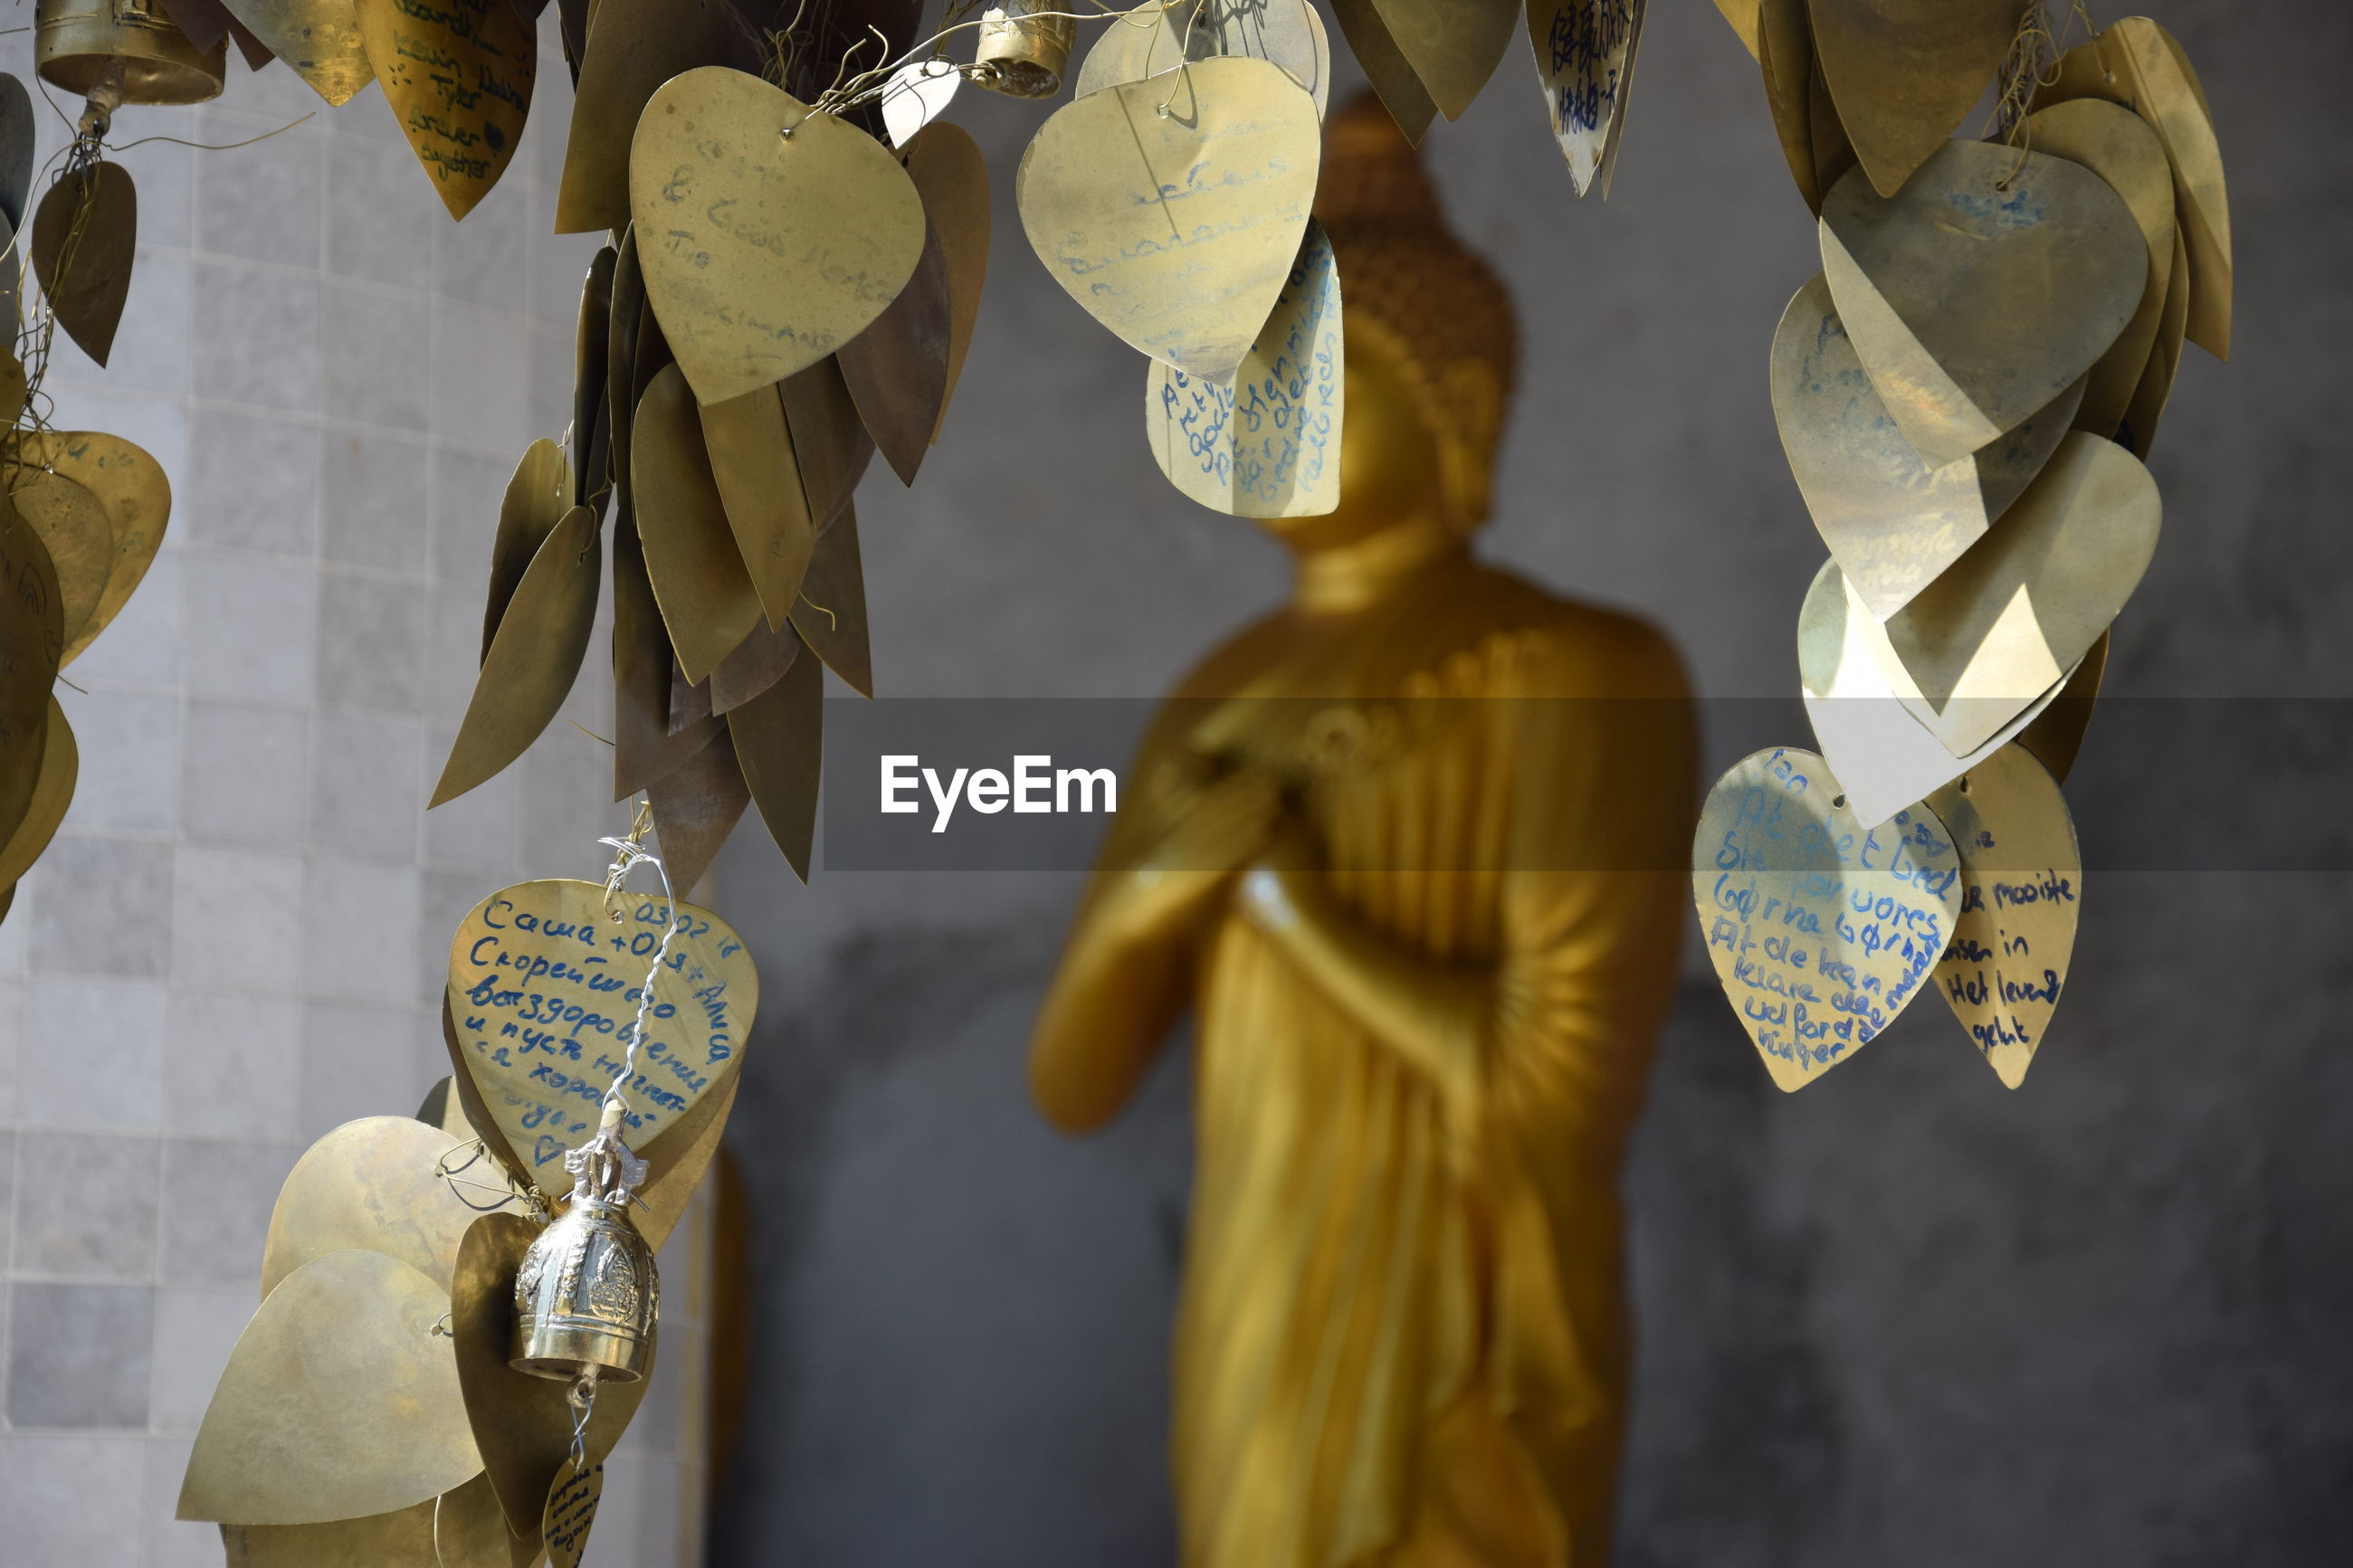 Heart shape cards hanging by statue